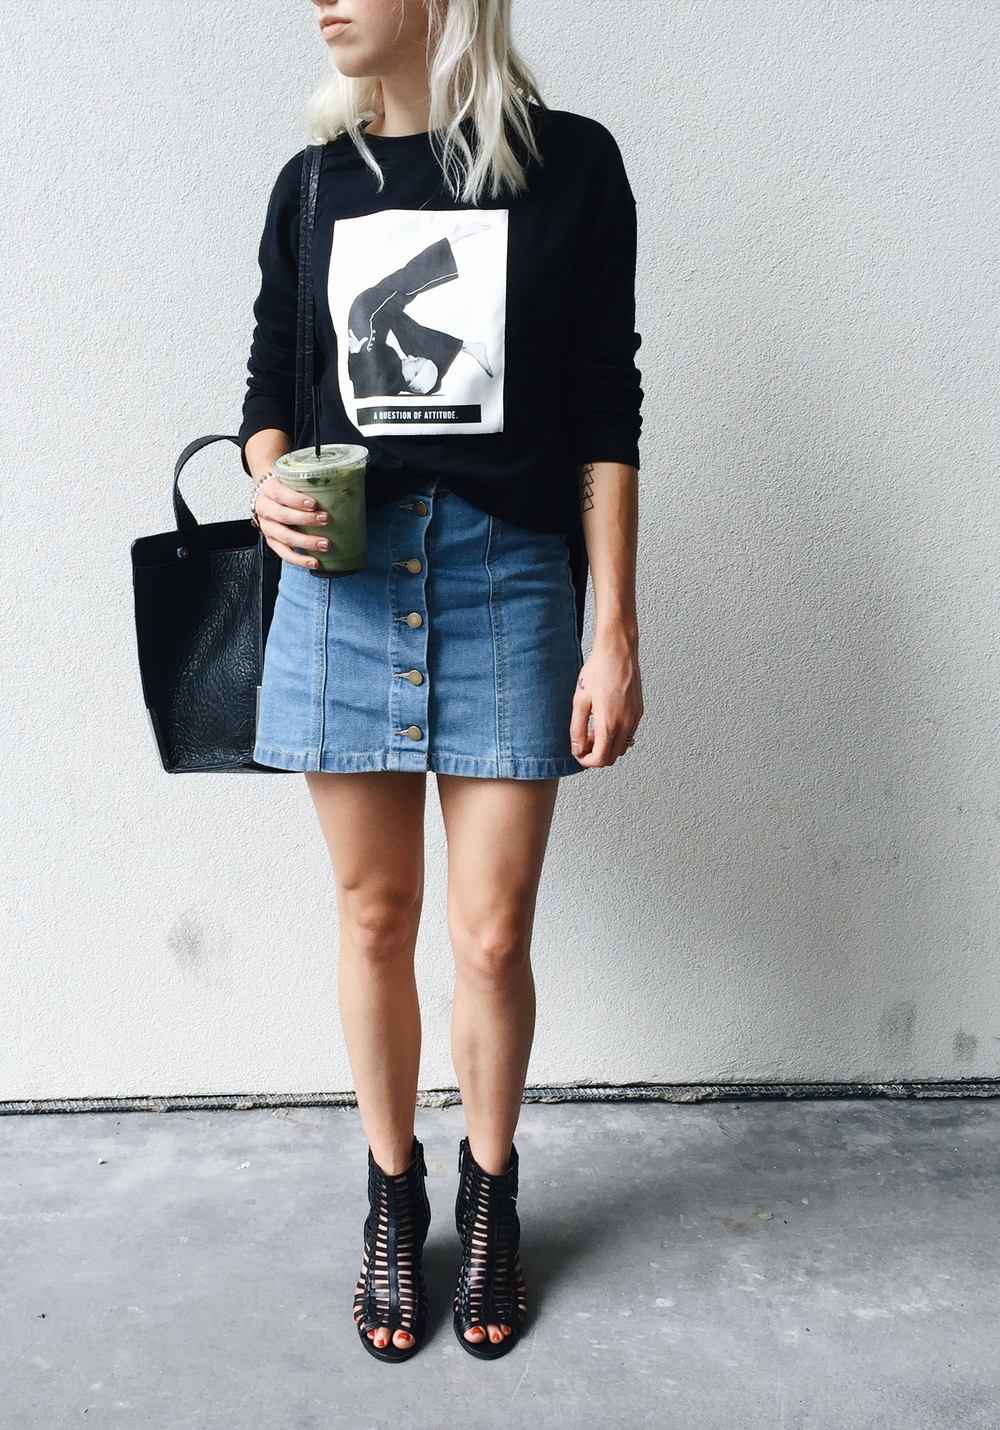 SKIRT / TOP / SHOES / BAG (on sale!)